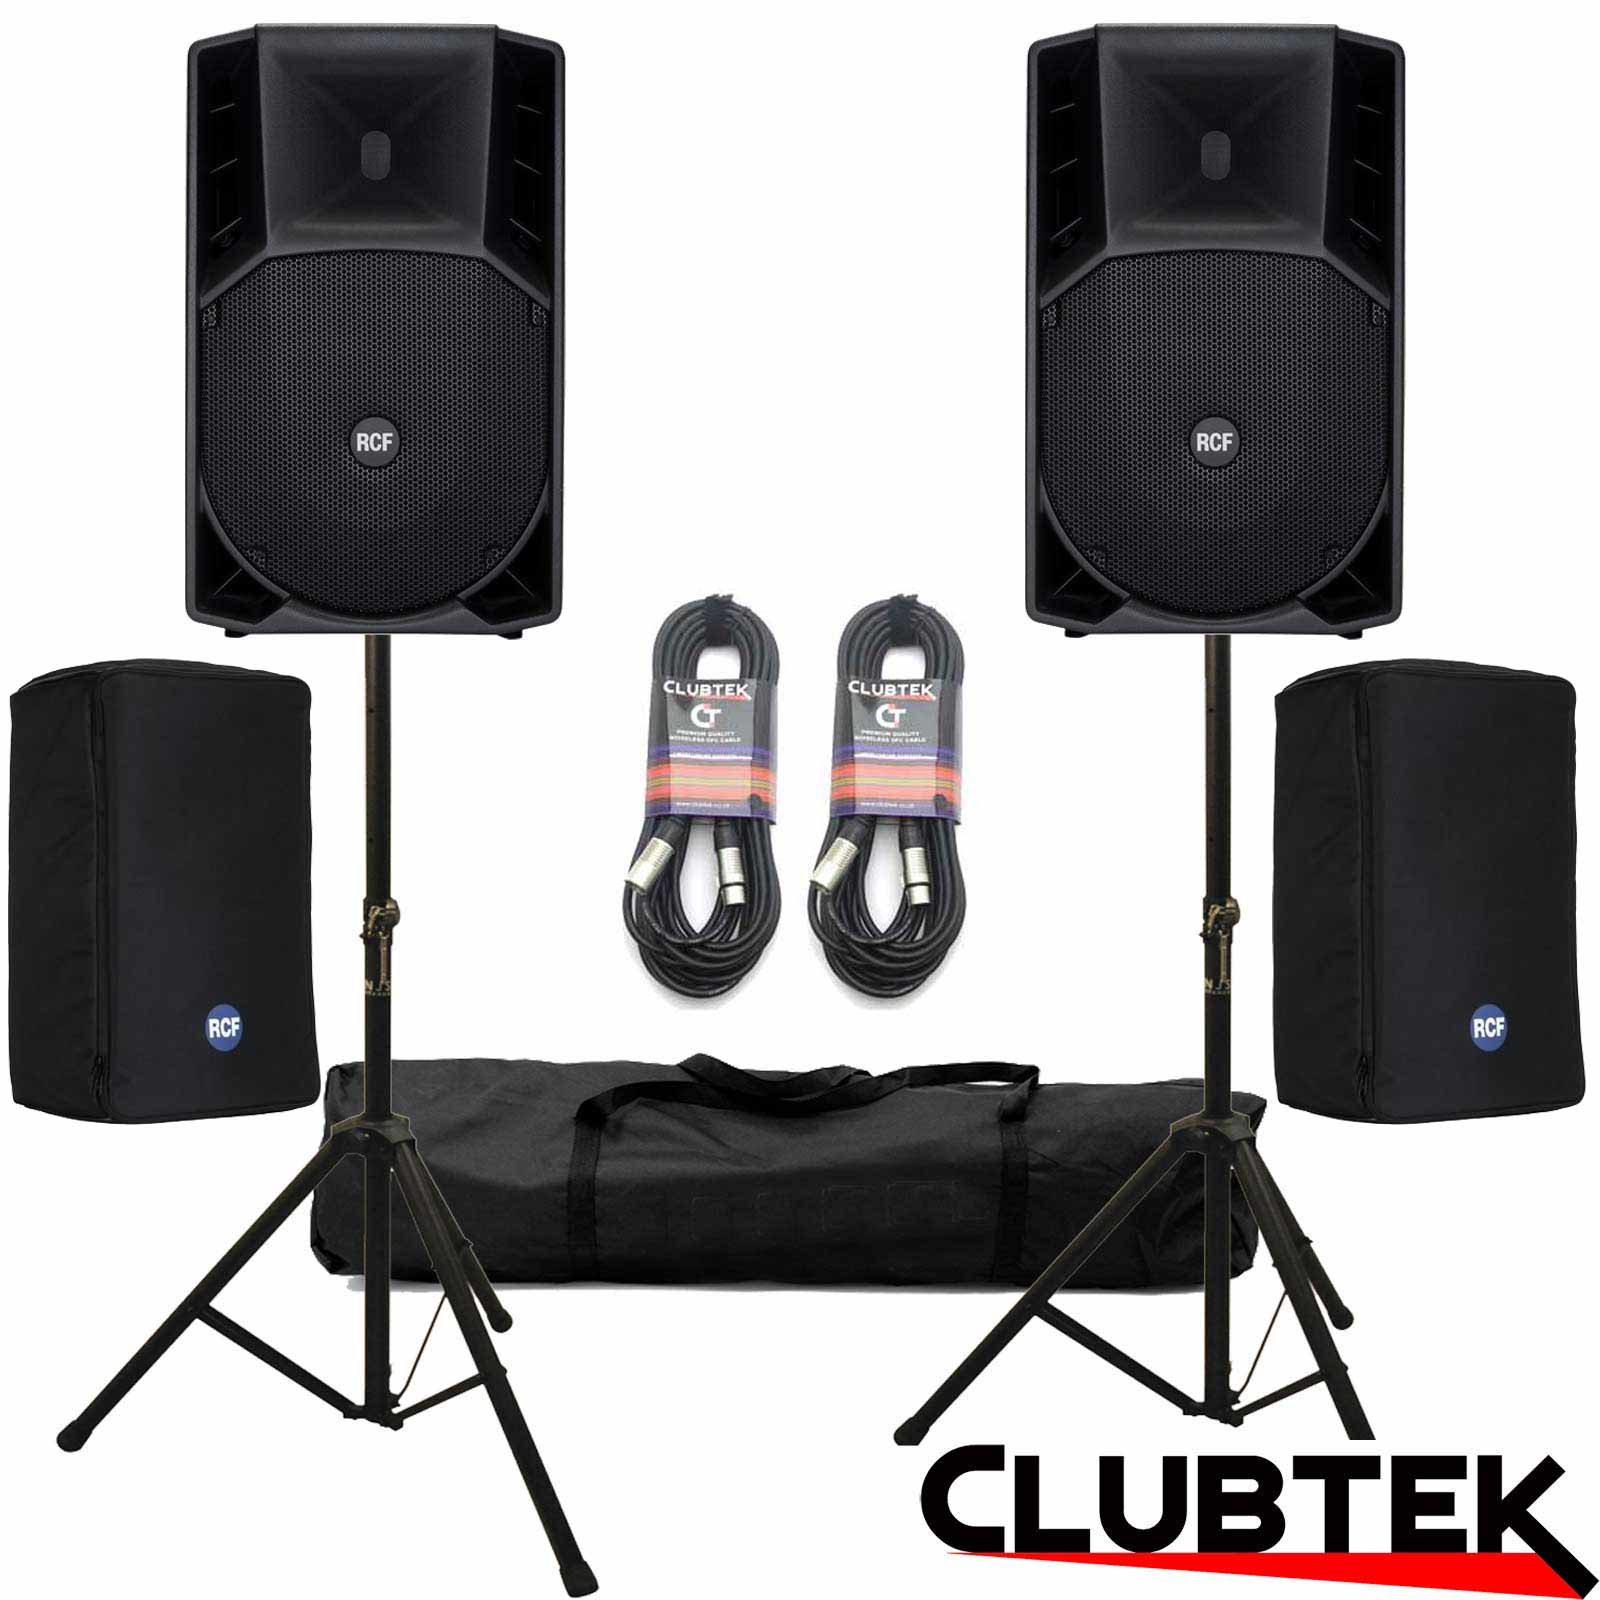 PAIR of RCF Art 715A MK4 Speakers + Covers + Free Stands, Cables